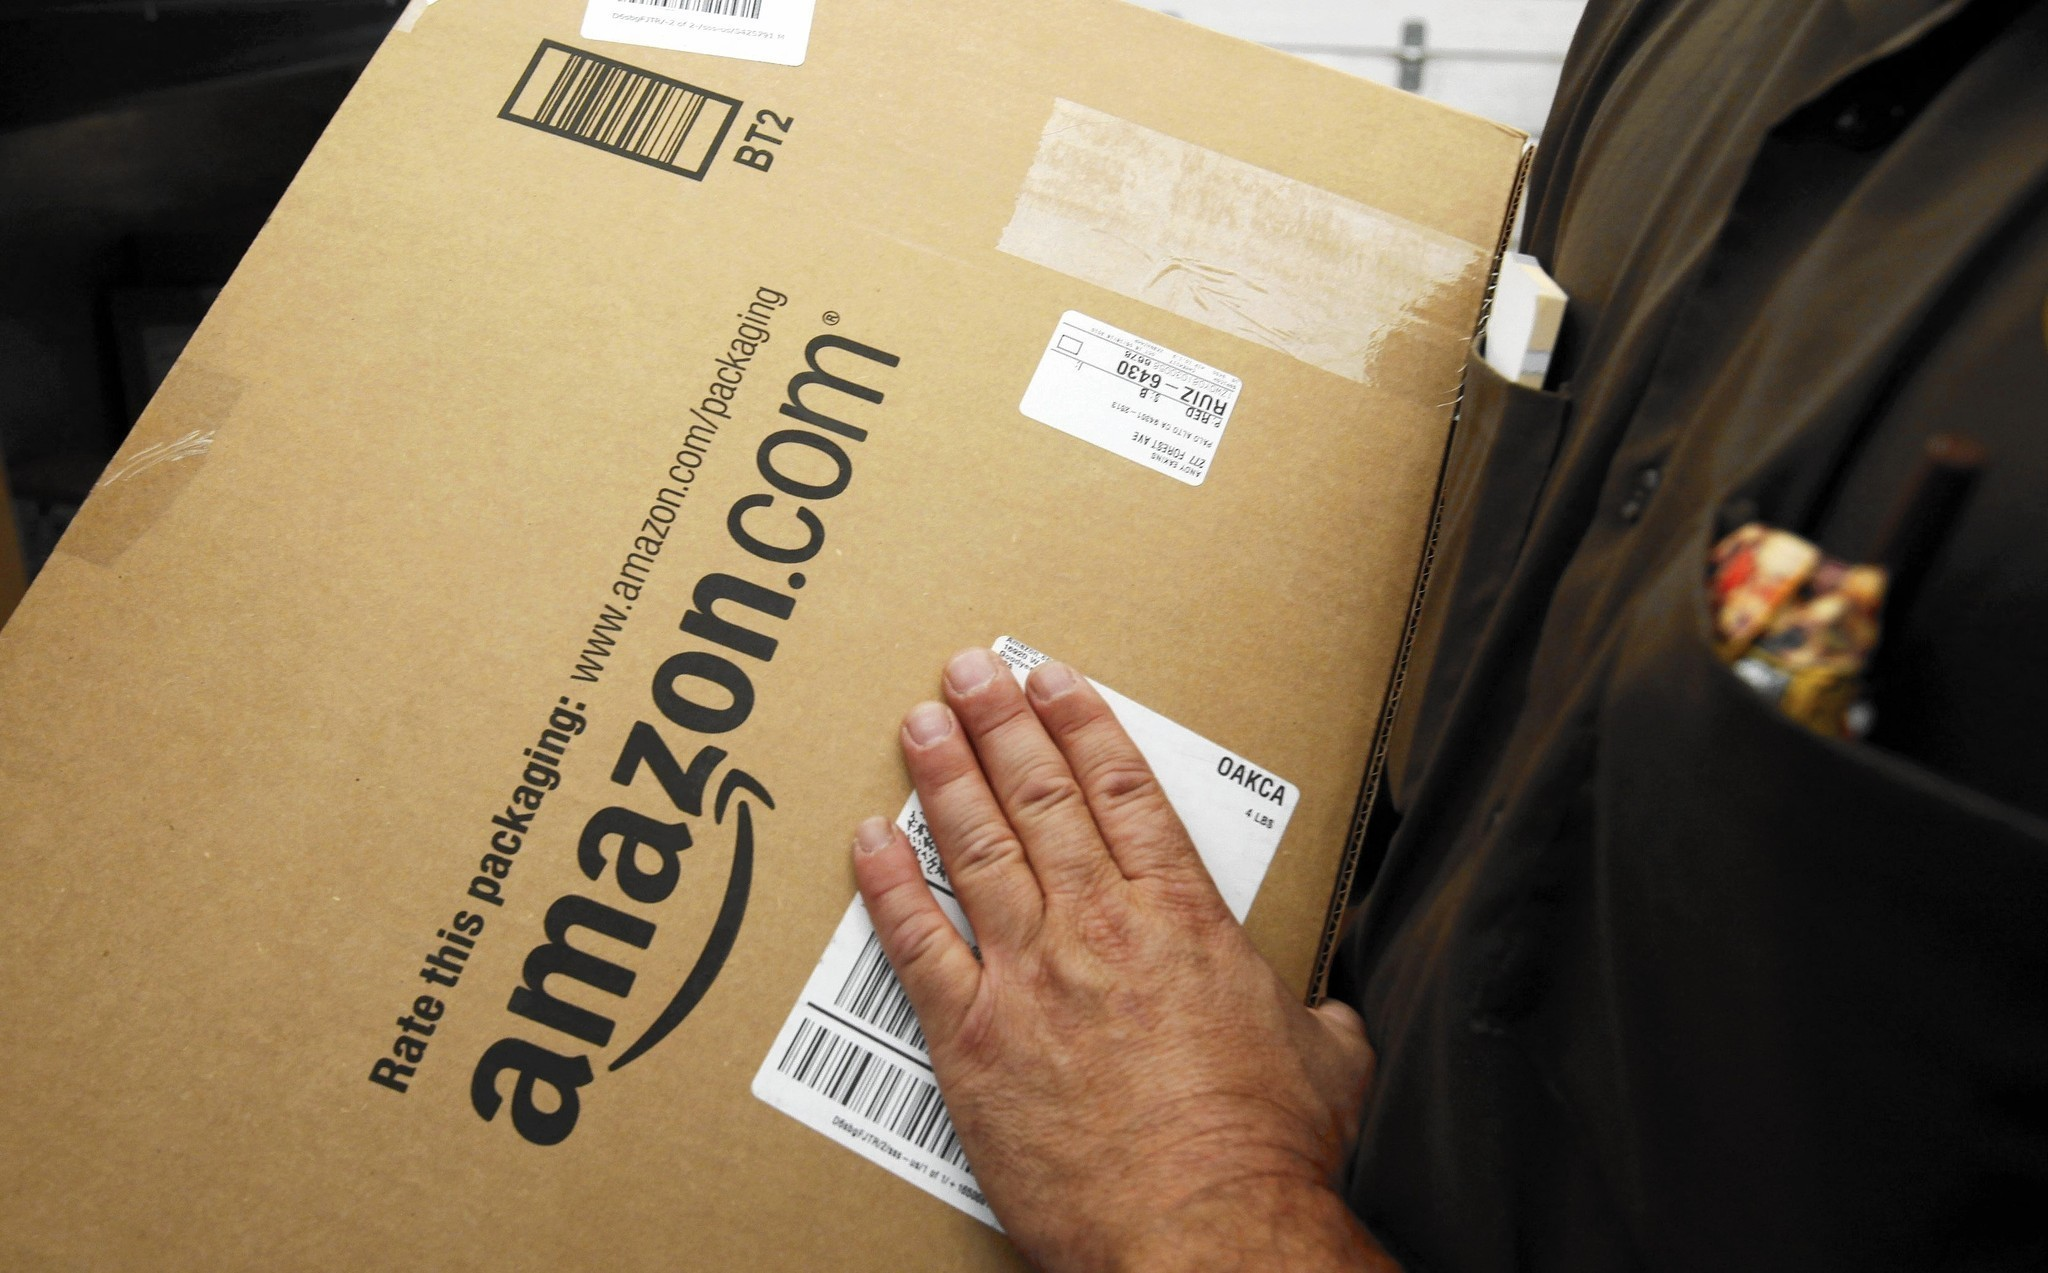 Amazon rolls out free same-day delivery